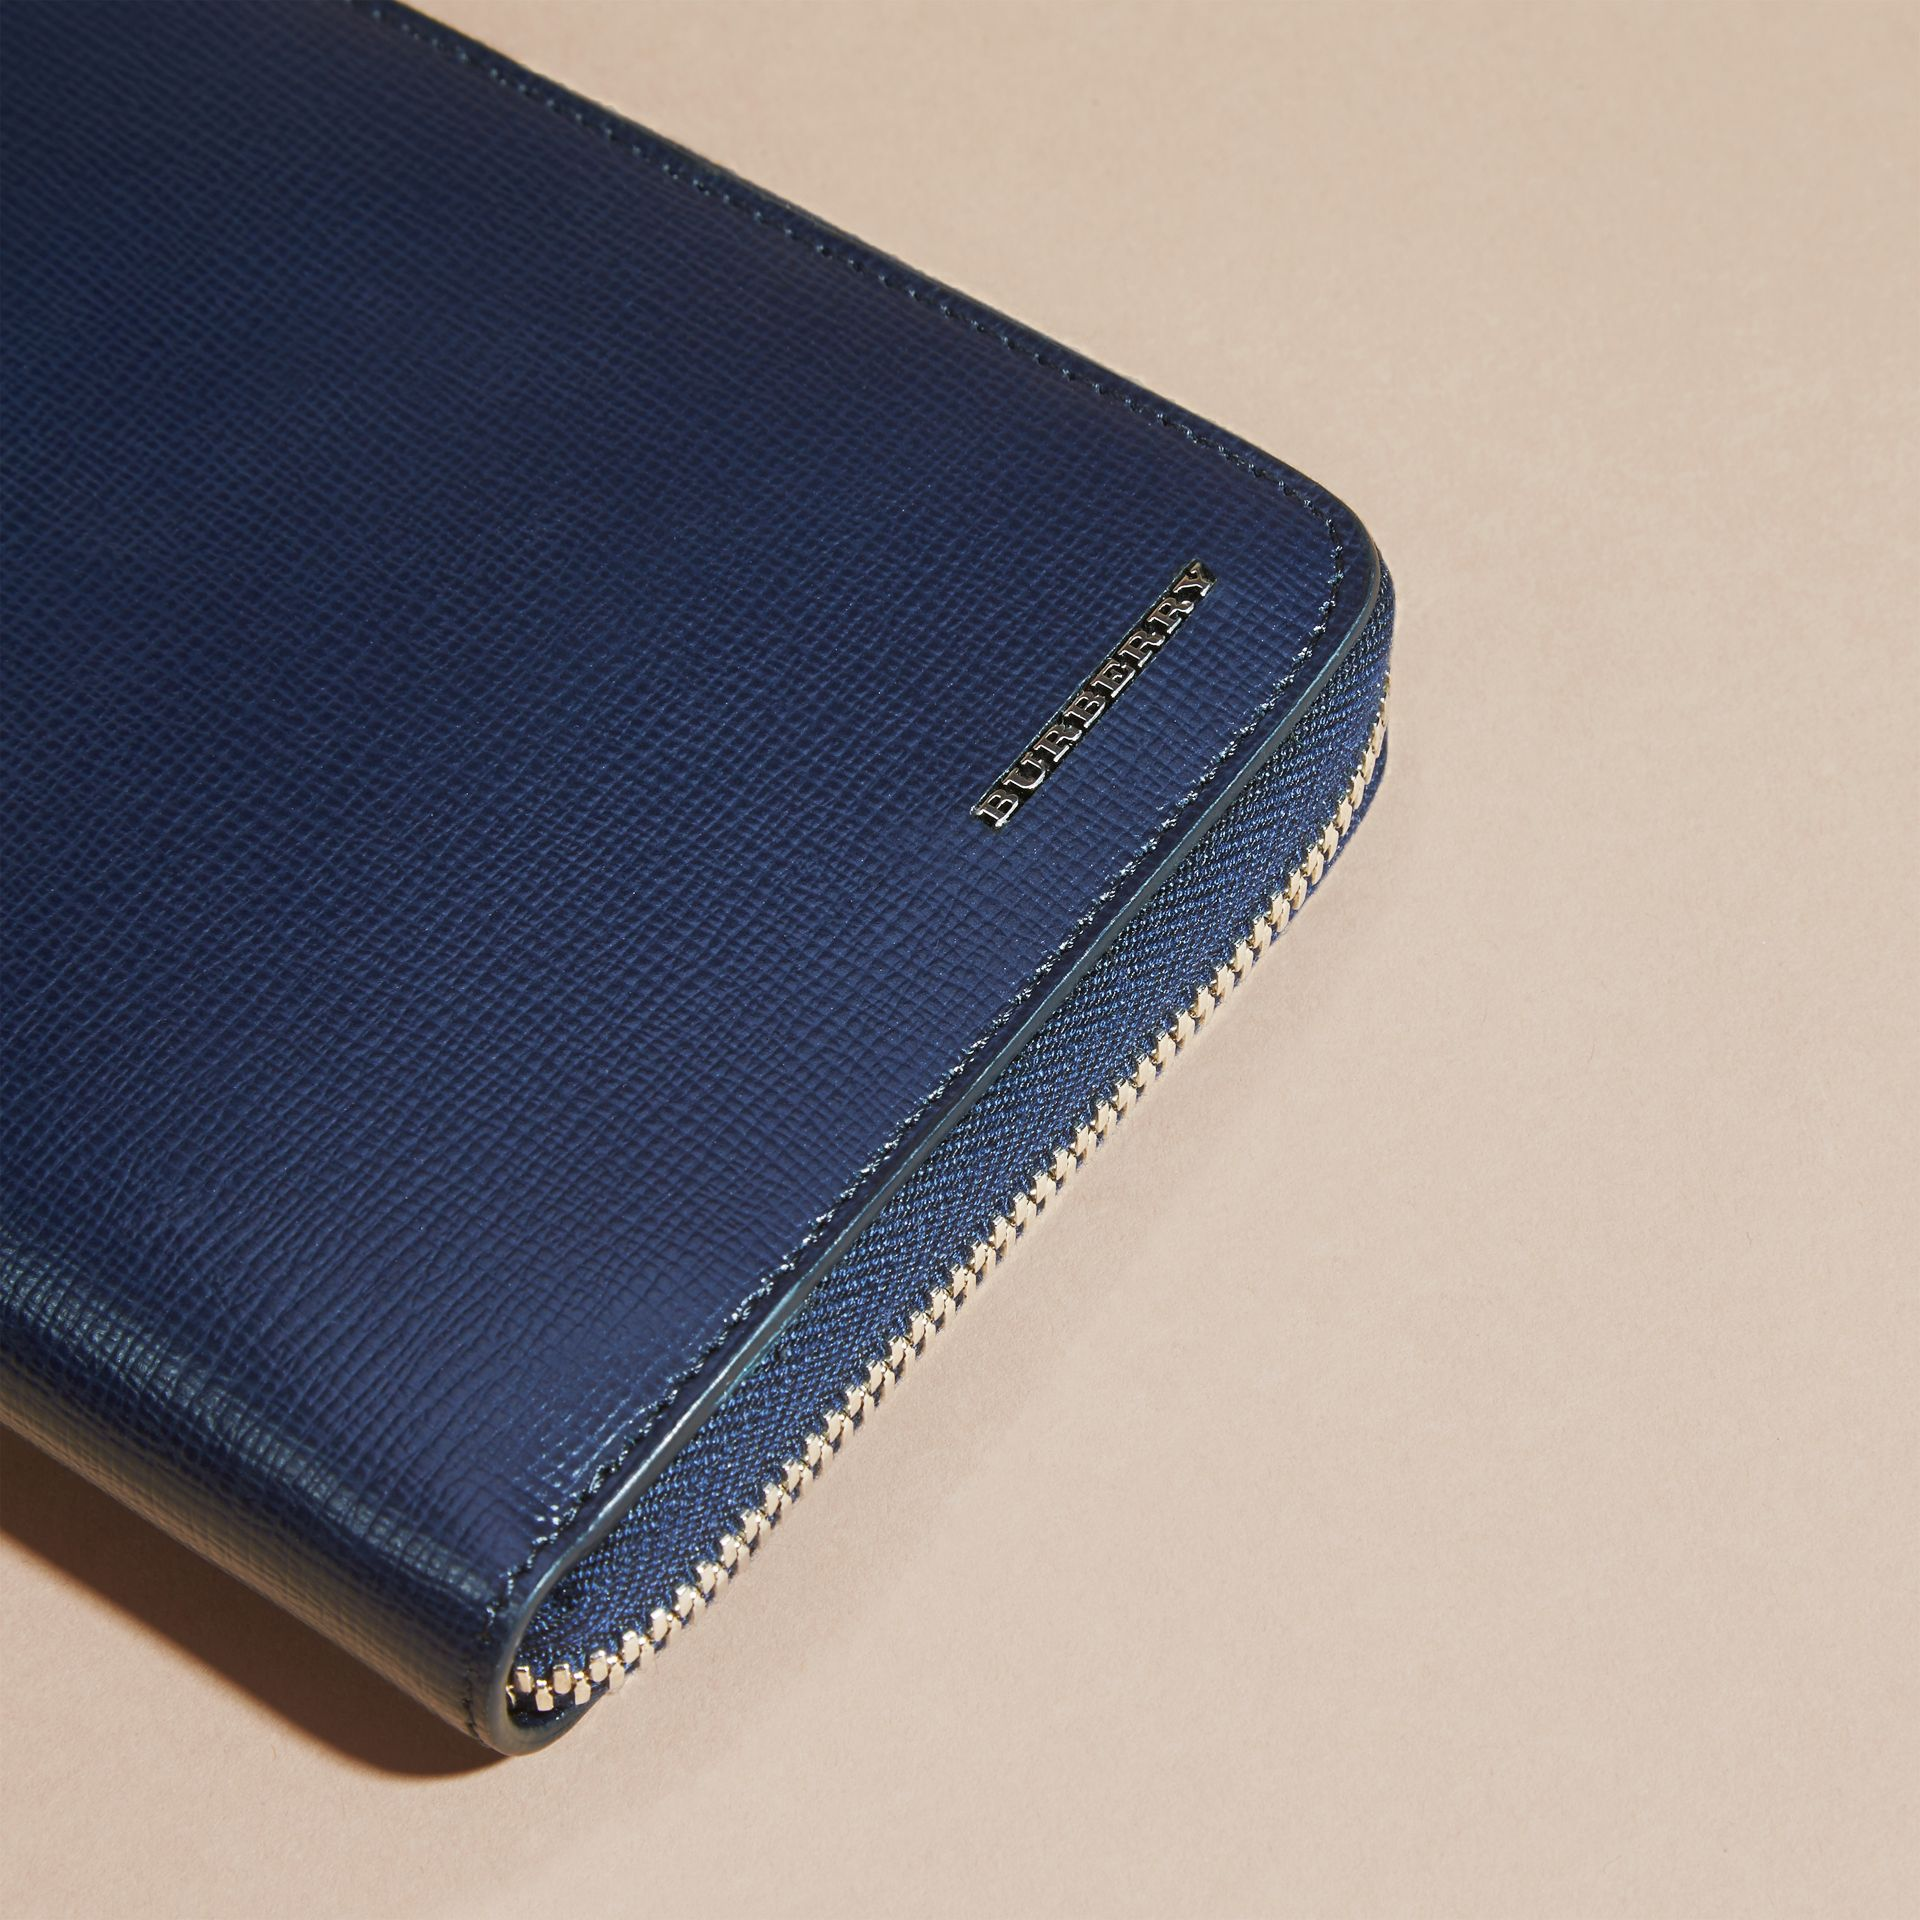 Dark navy London Leather Ziparound Wallet Dark Navy - gallery image 4